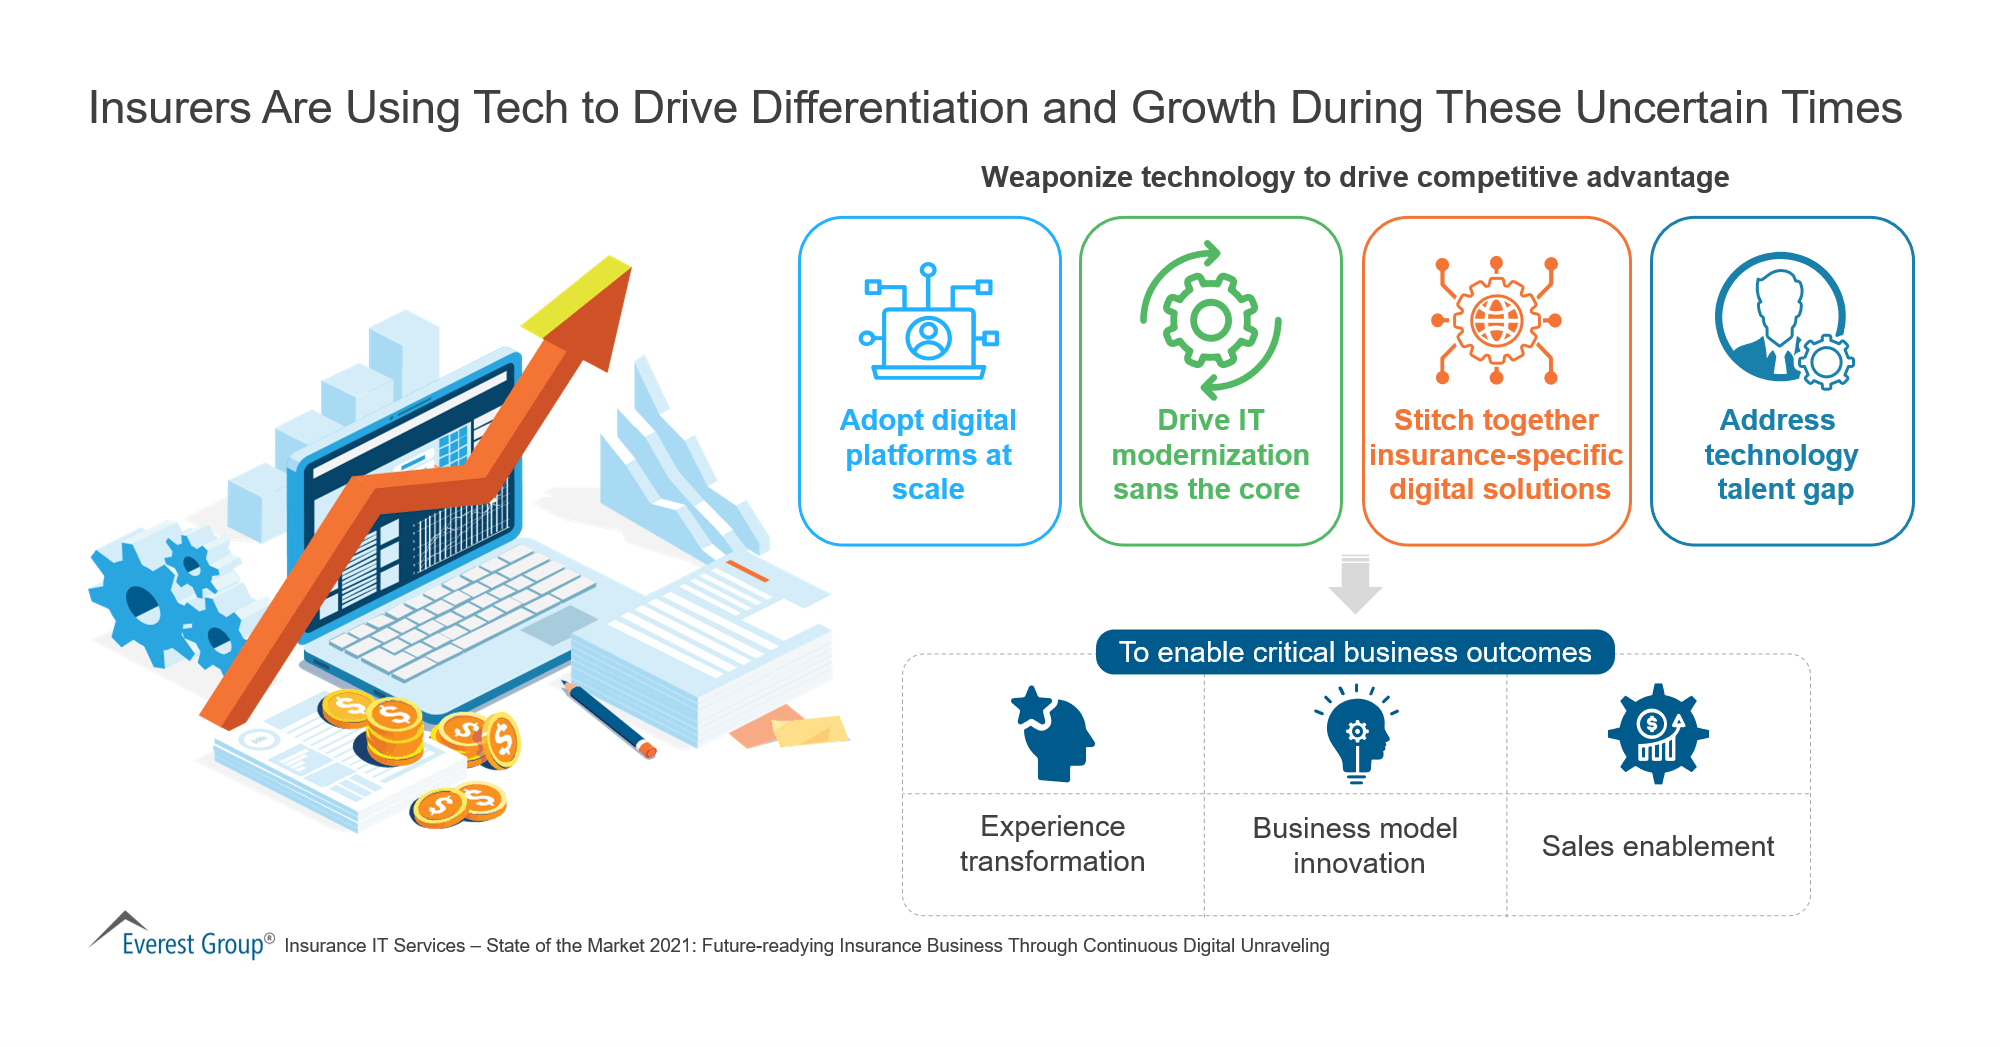 Insurers Are Using Tech to Drive Differentiation and Growth During These Uncertain Times